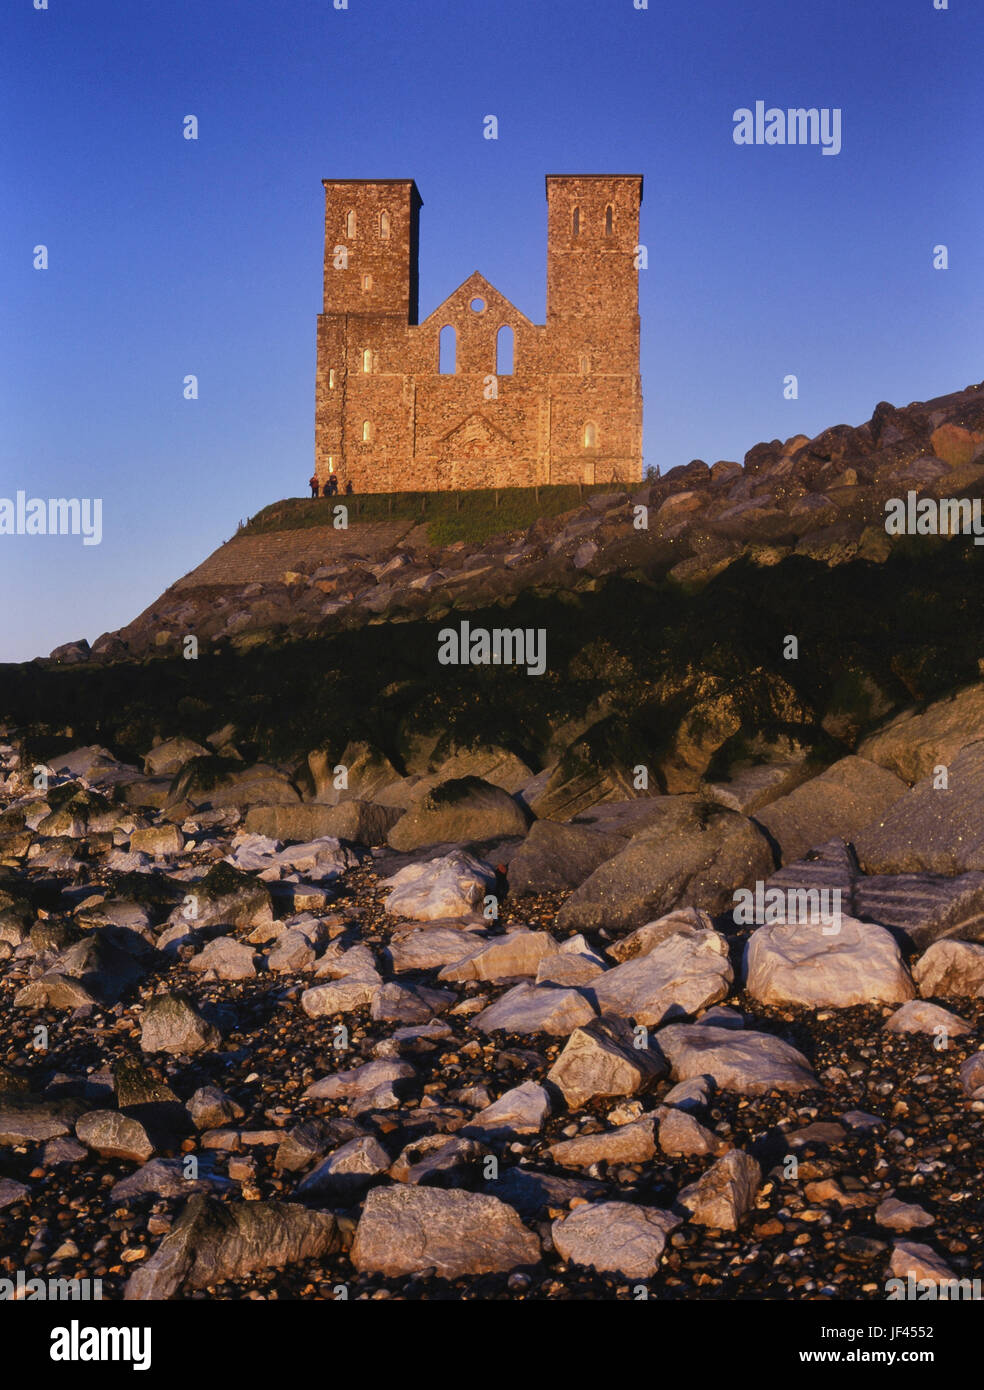 12th-century towers of the former monastic church, Reculver Towers and Roman Fort, Kent, England, UK - Stock Image